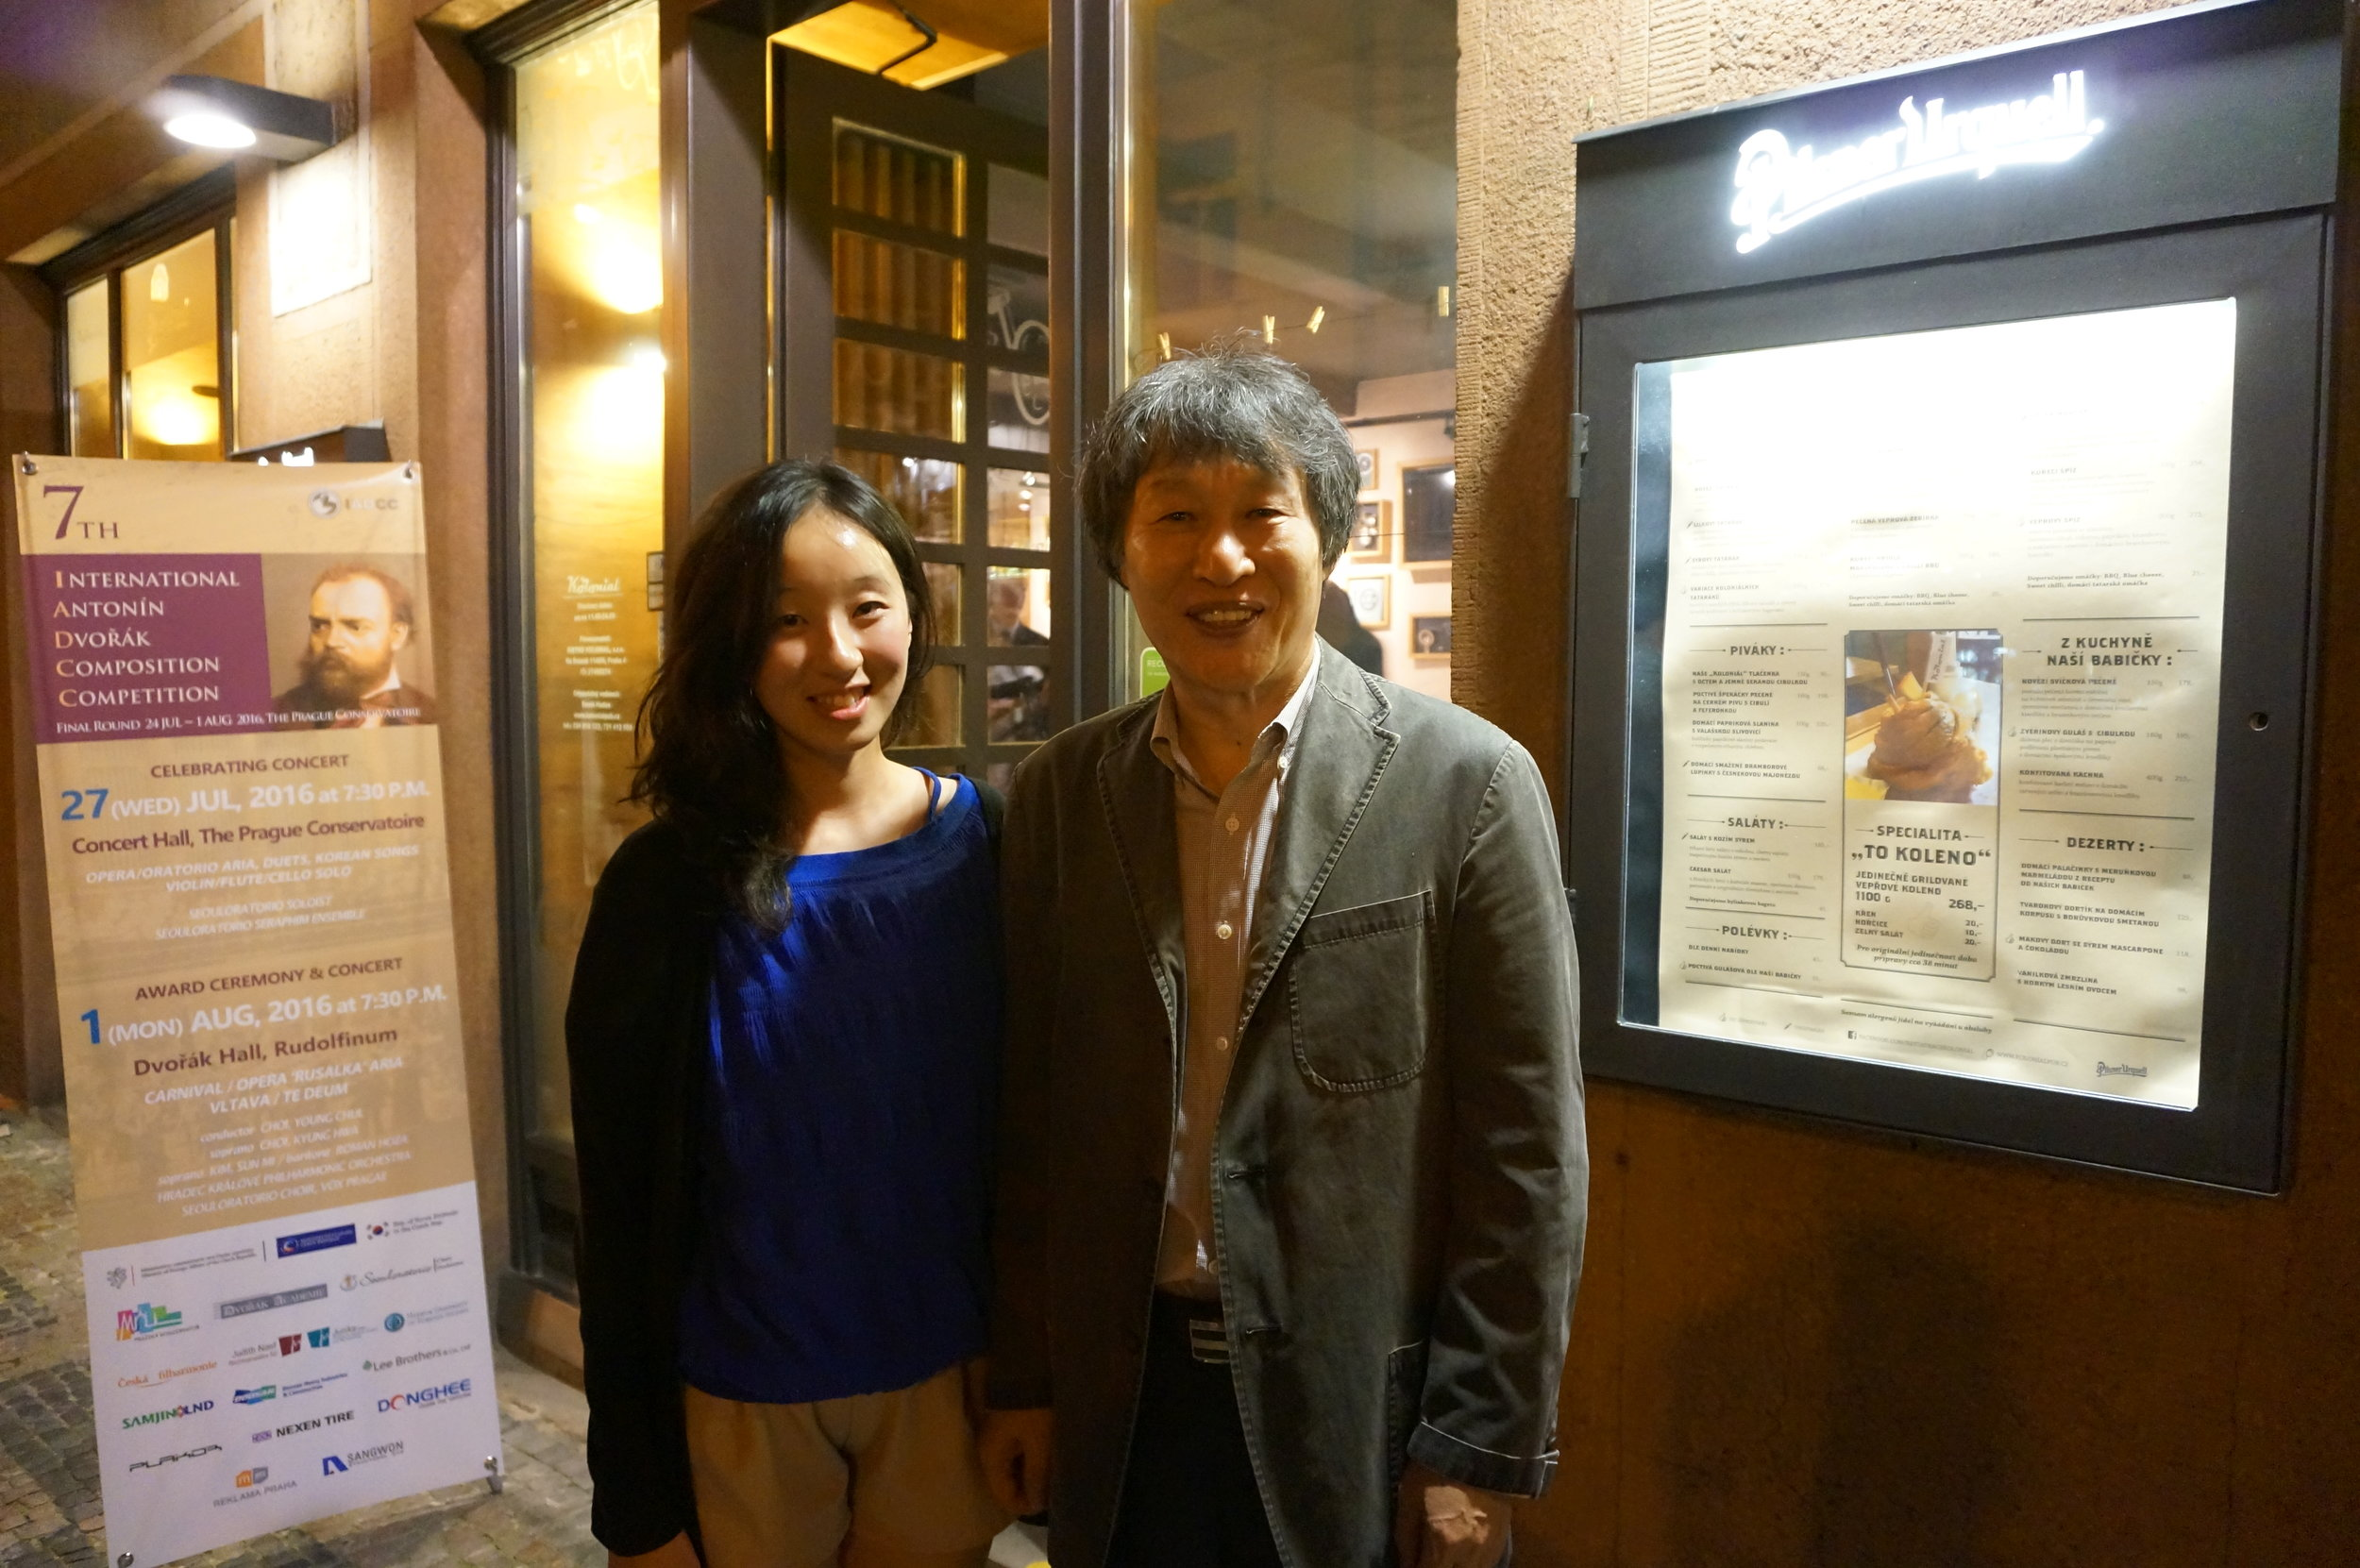 With the conductor Young-Chul Choi